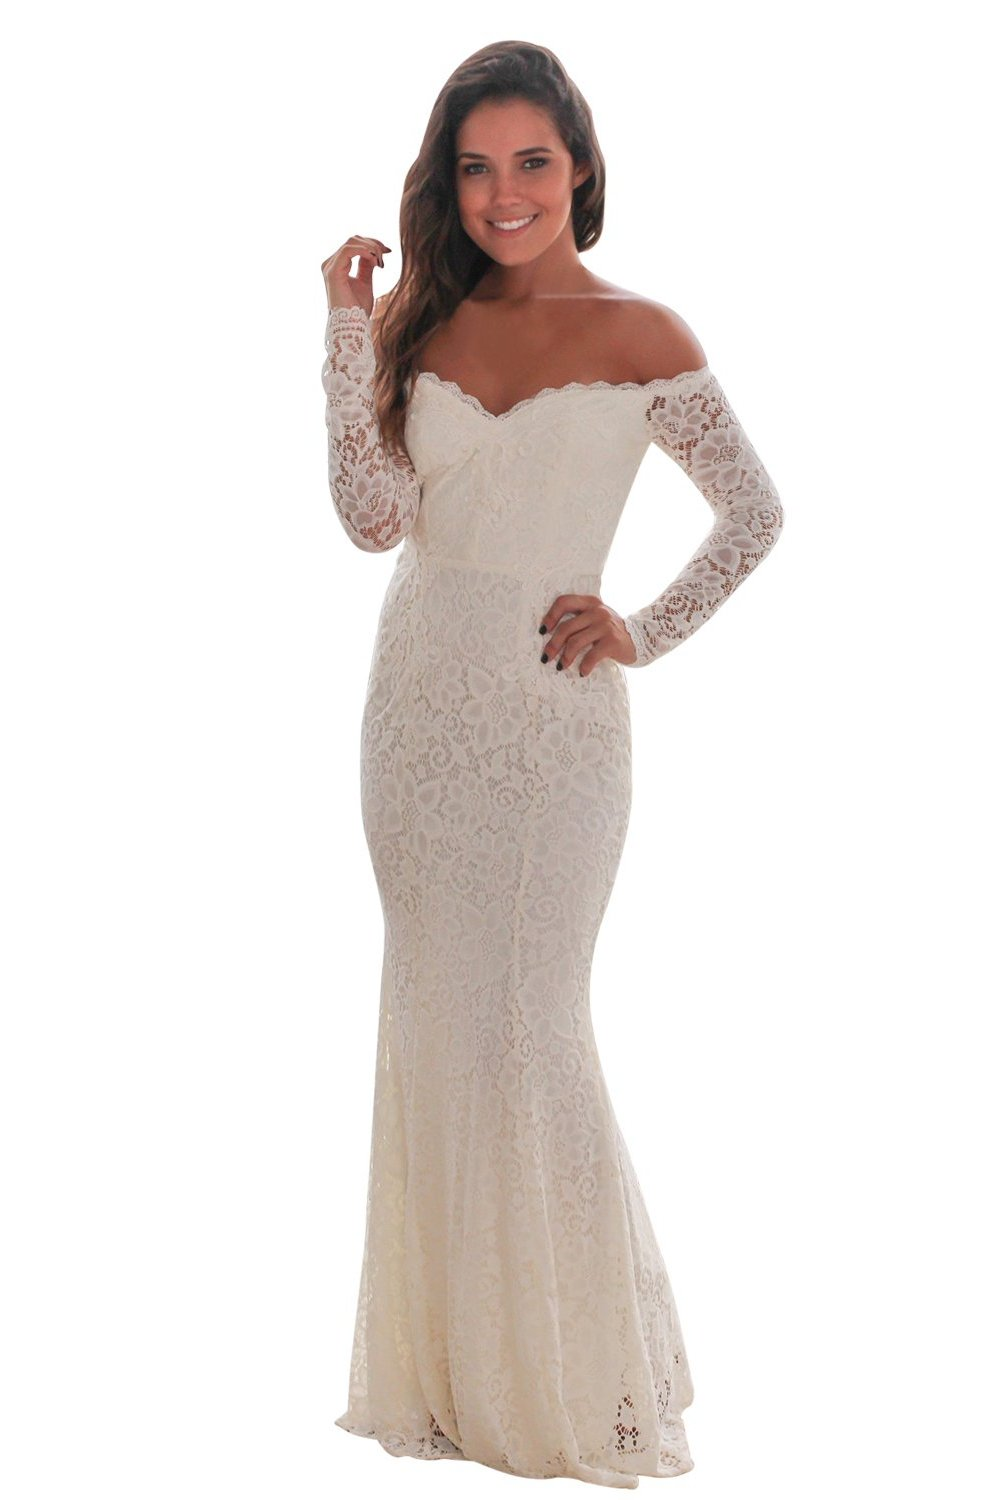 Her Fashion White Crochet Off Shoulder Maxi Evening Party Dress